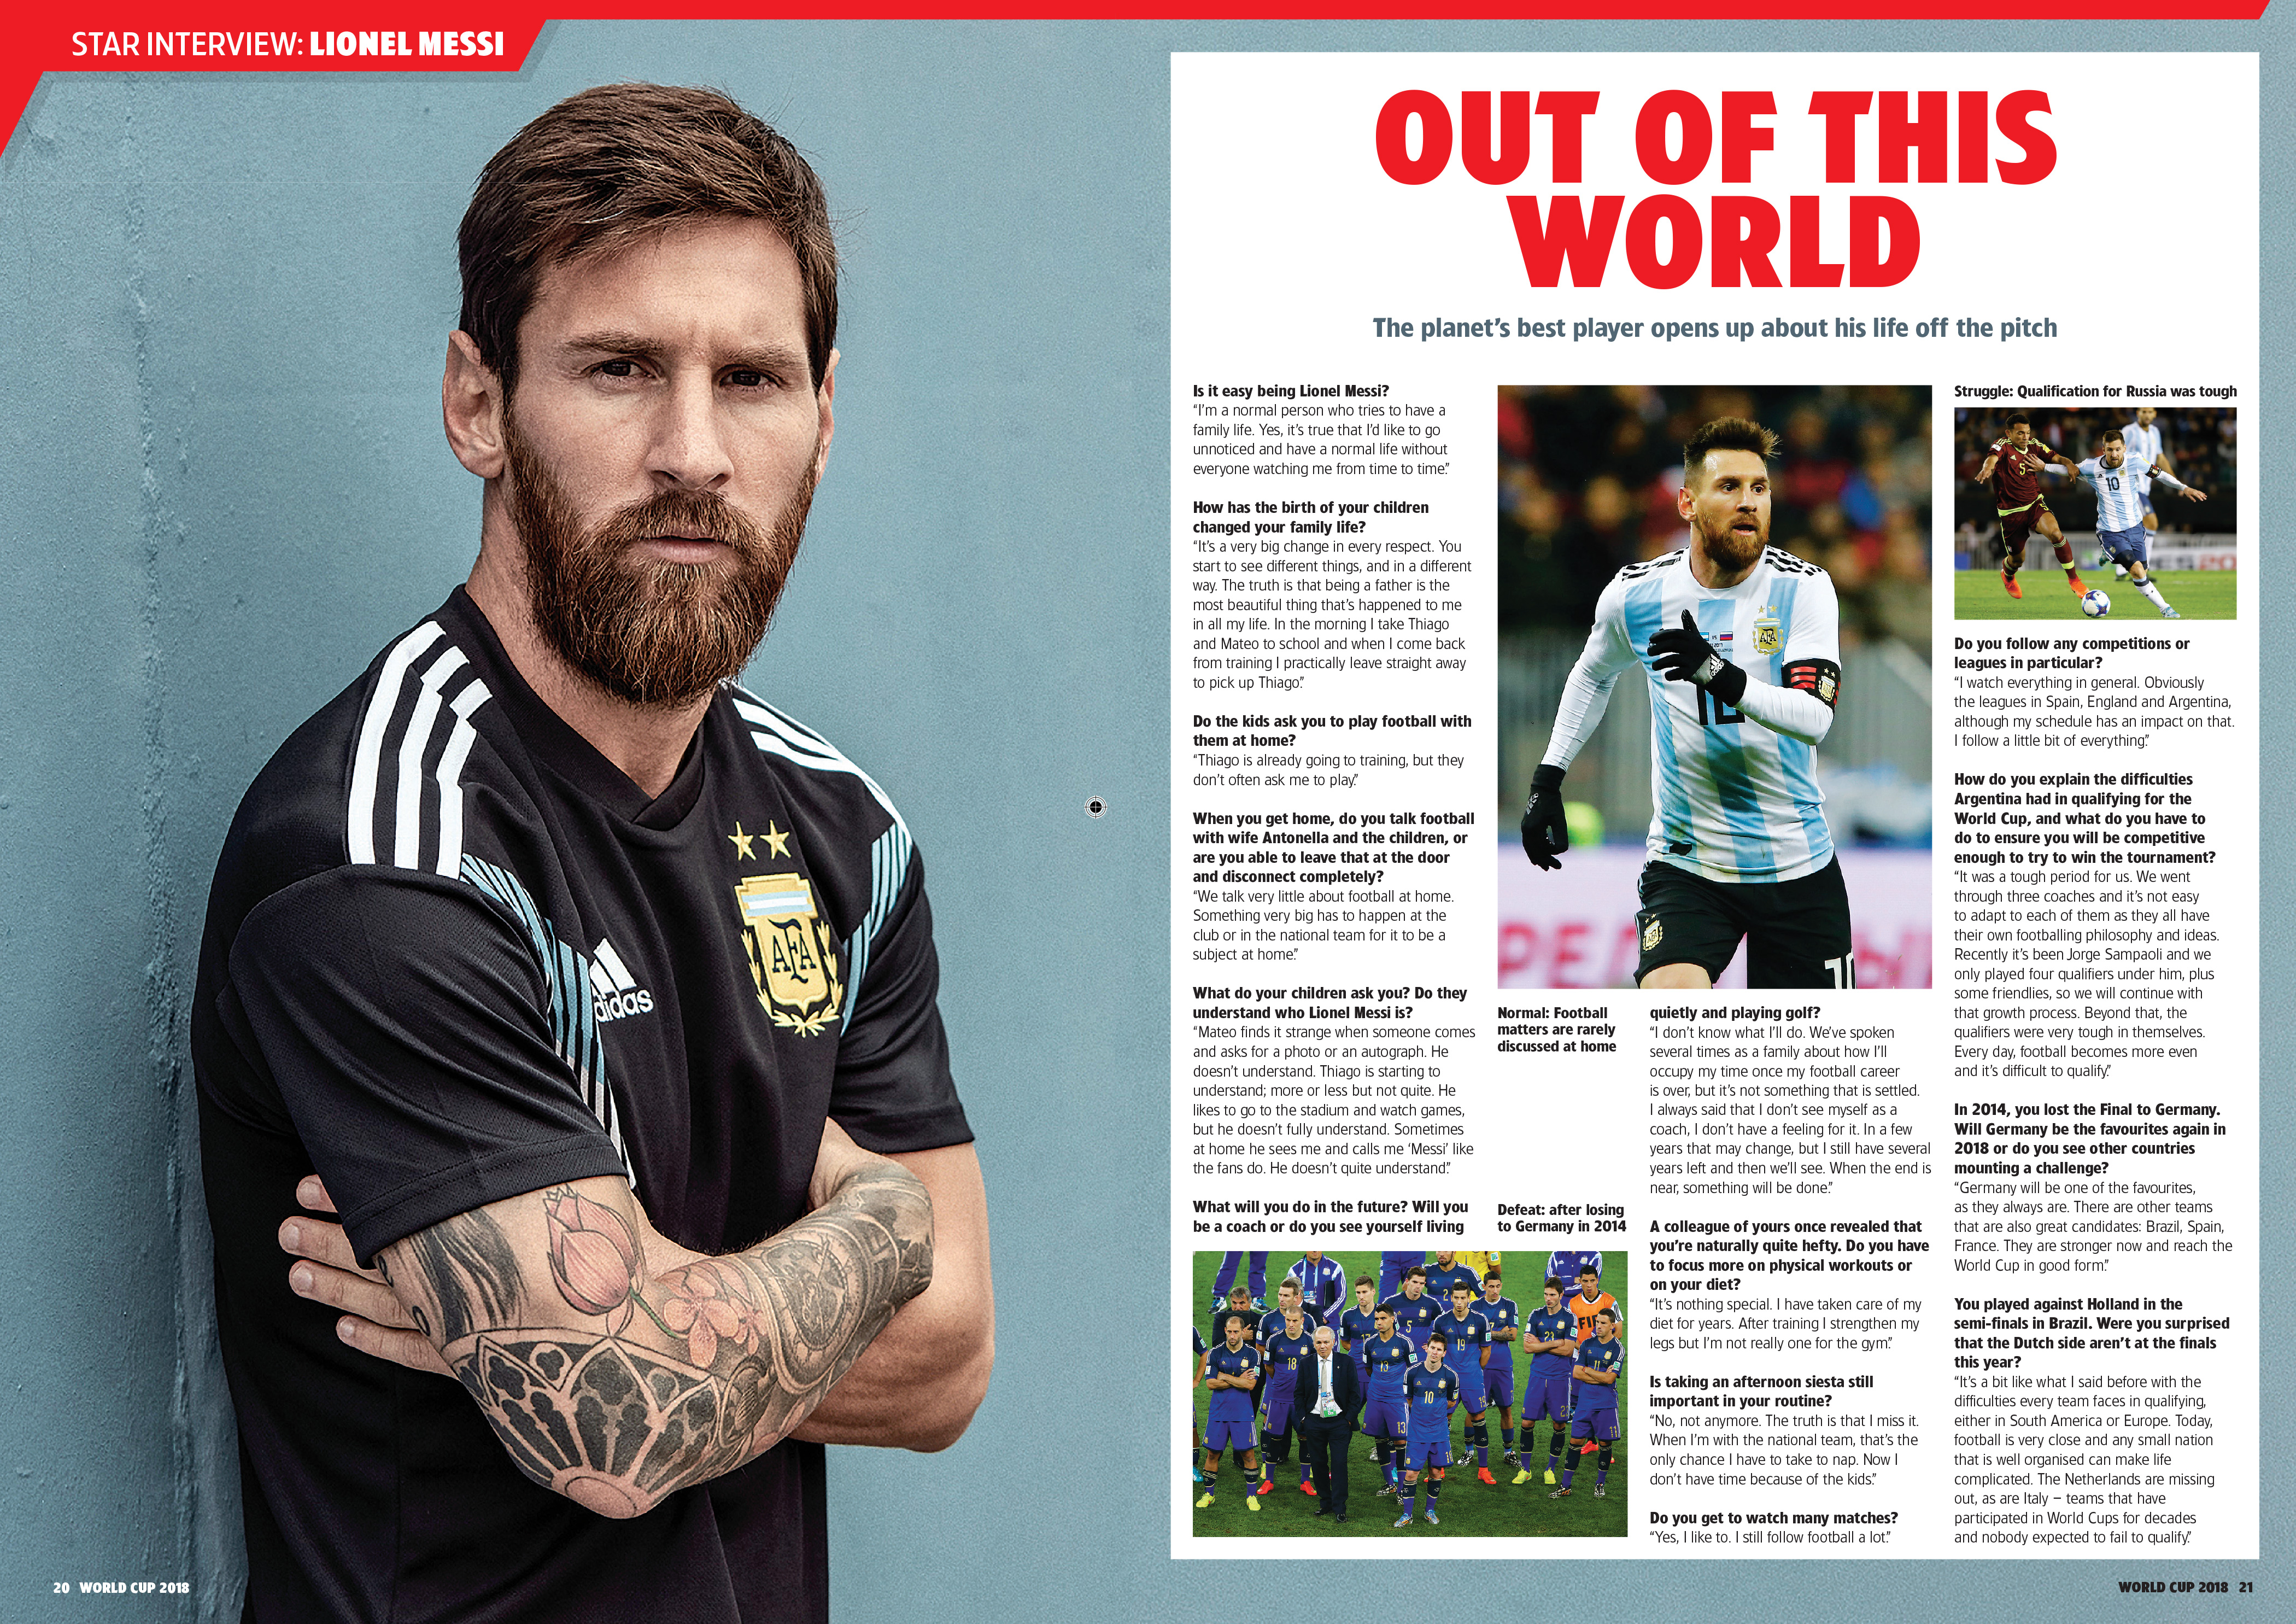 World Cup 2018: Messi